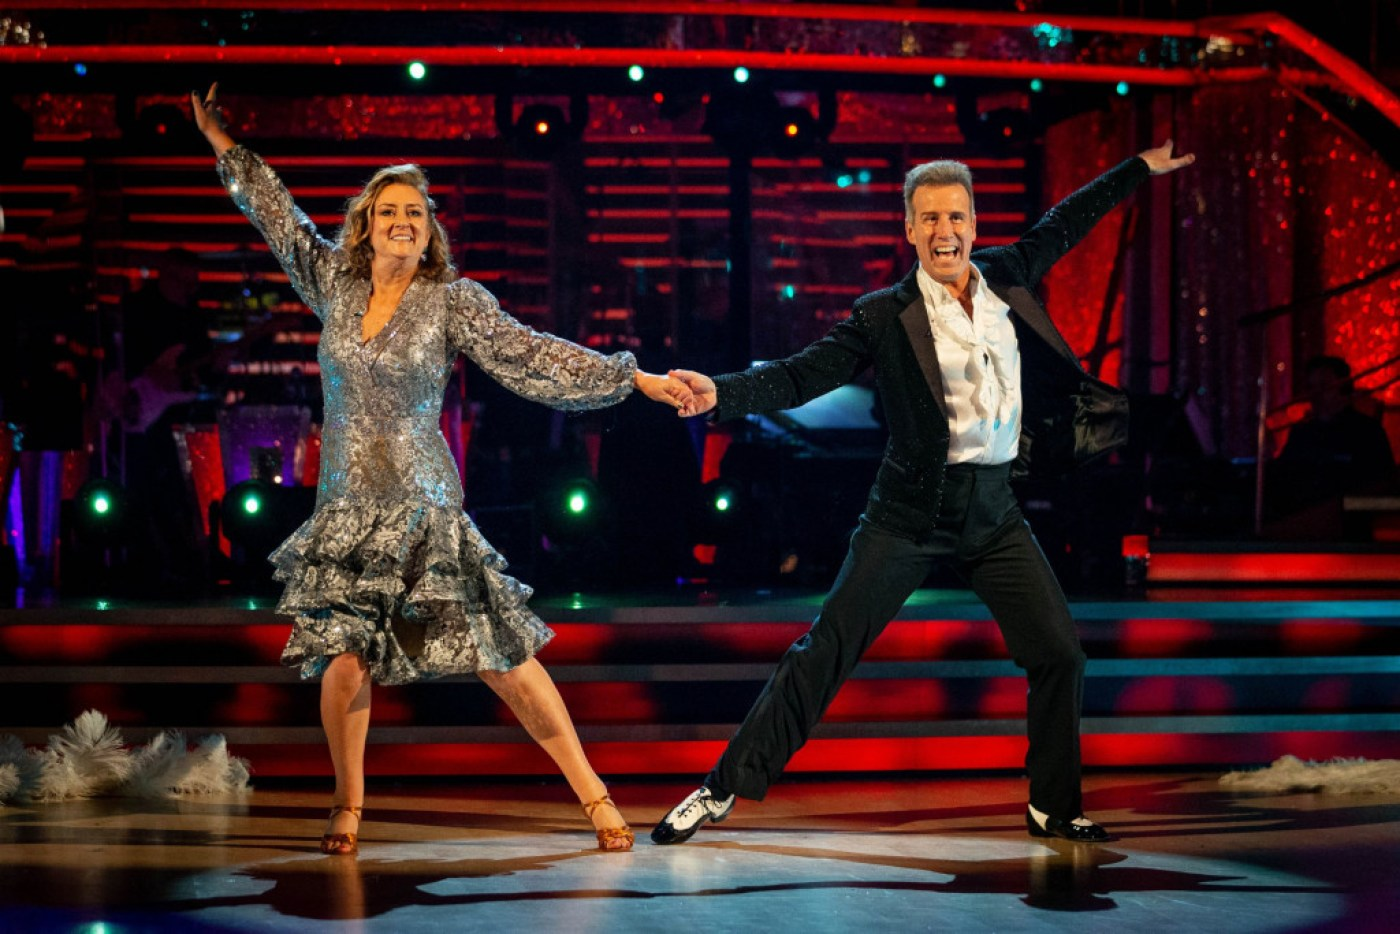 jacqui smith and anton du beke on strictly